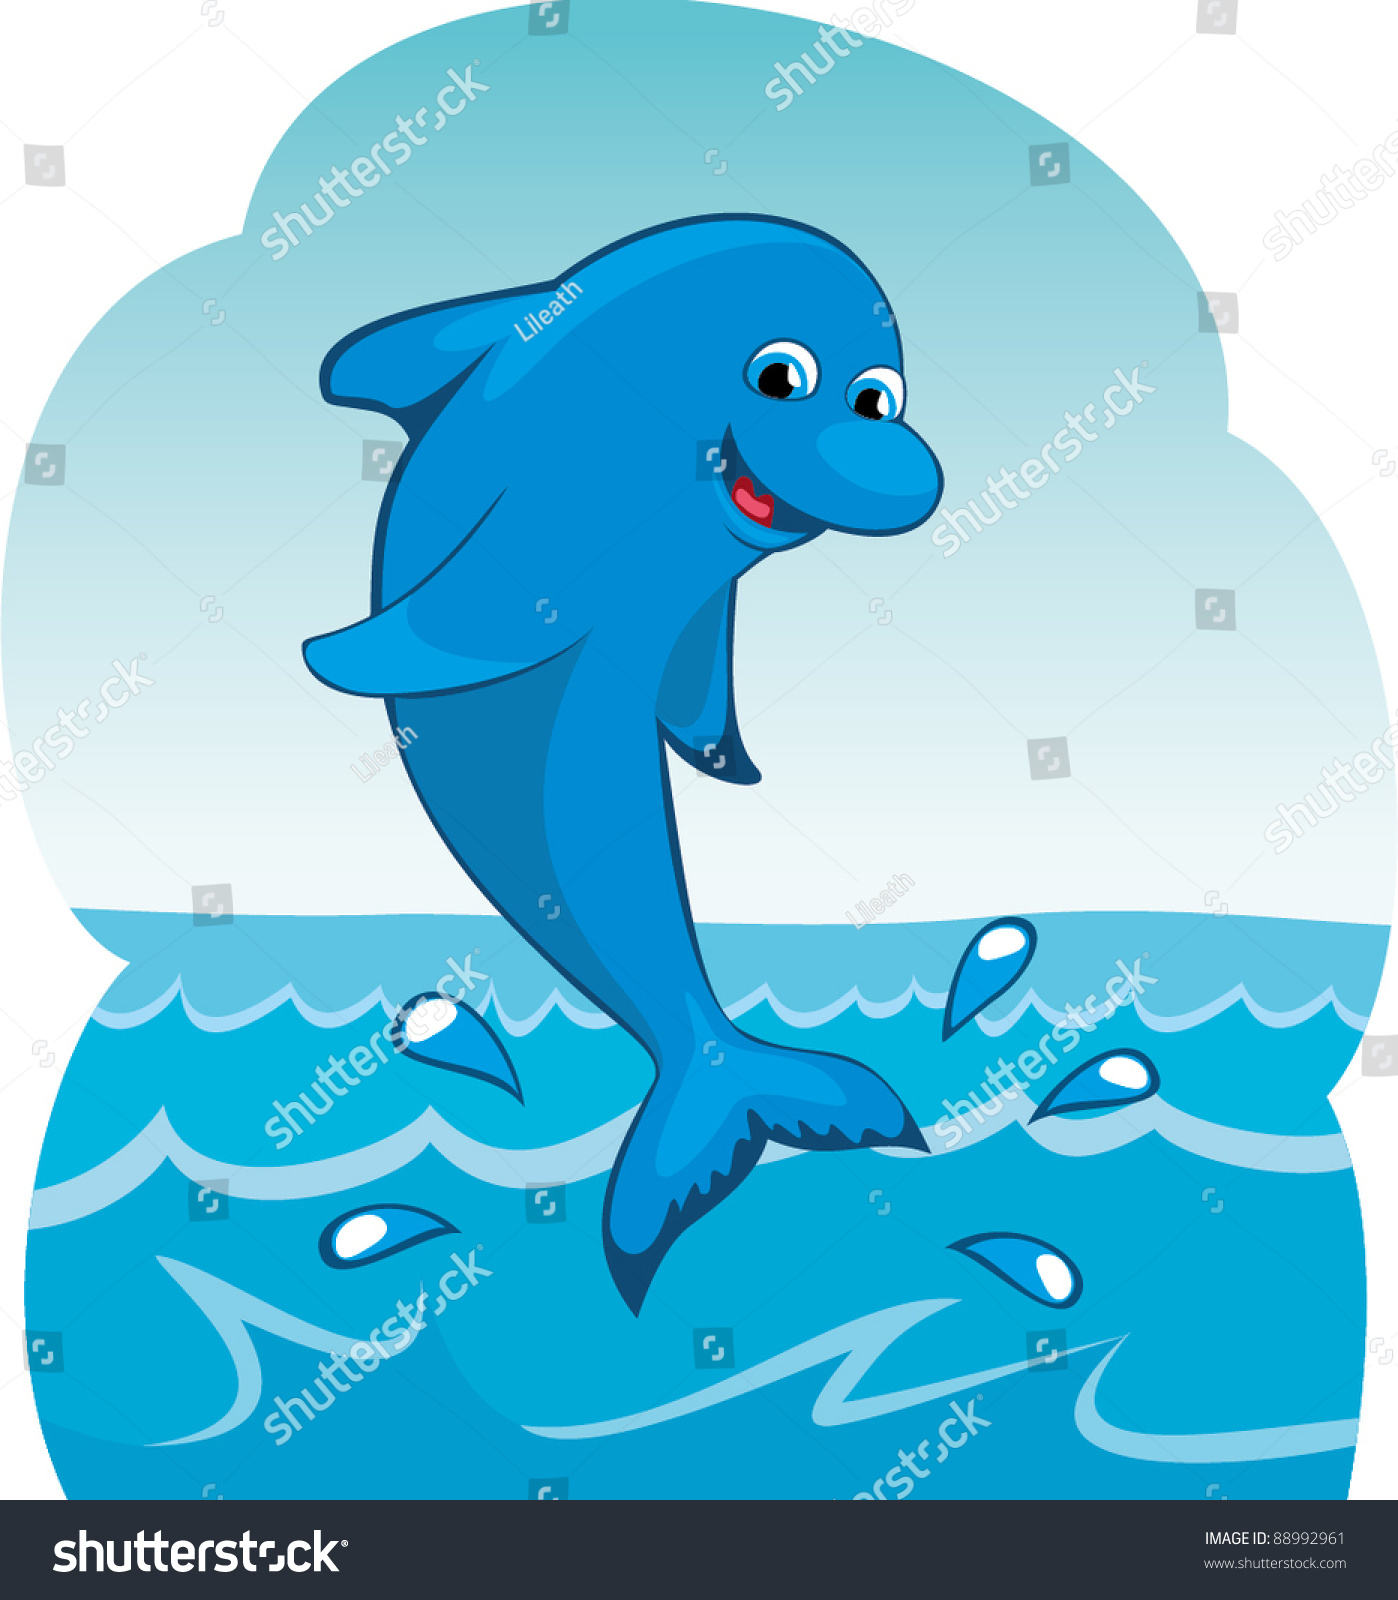 Water Funny Pictures Stock Vector Funny Cartoon Dolphin Jumping Out Of